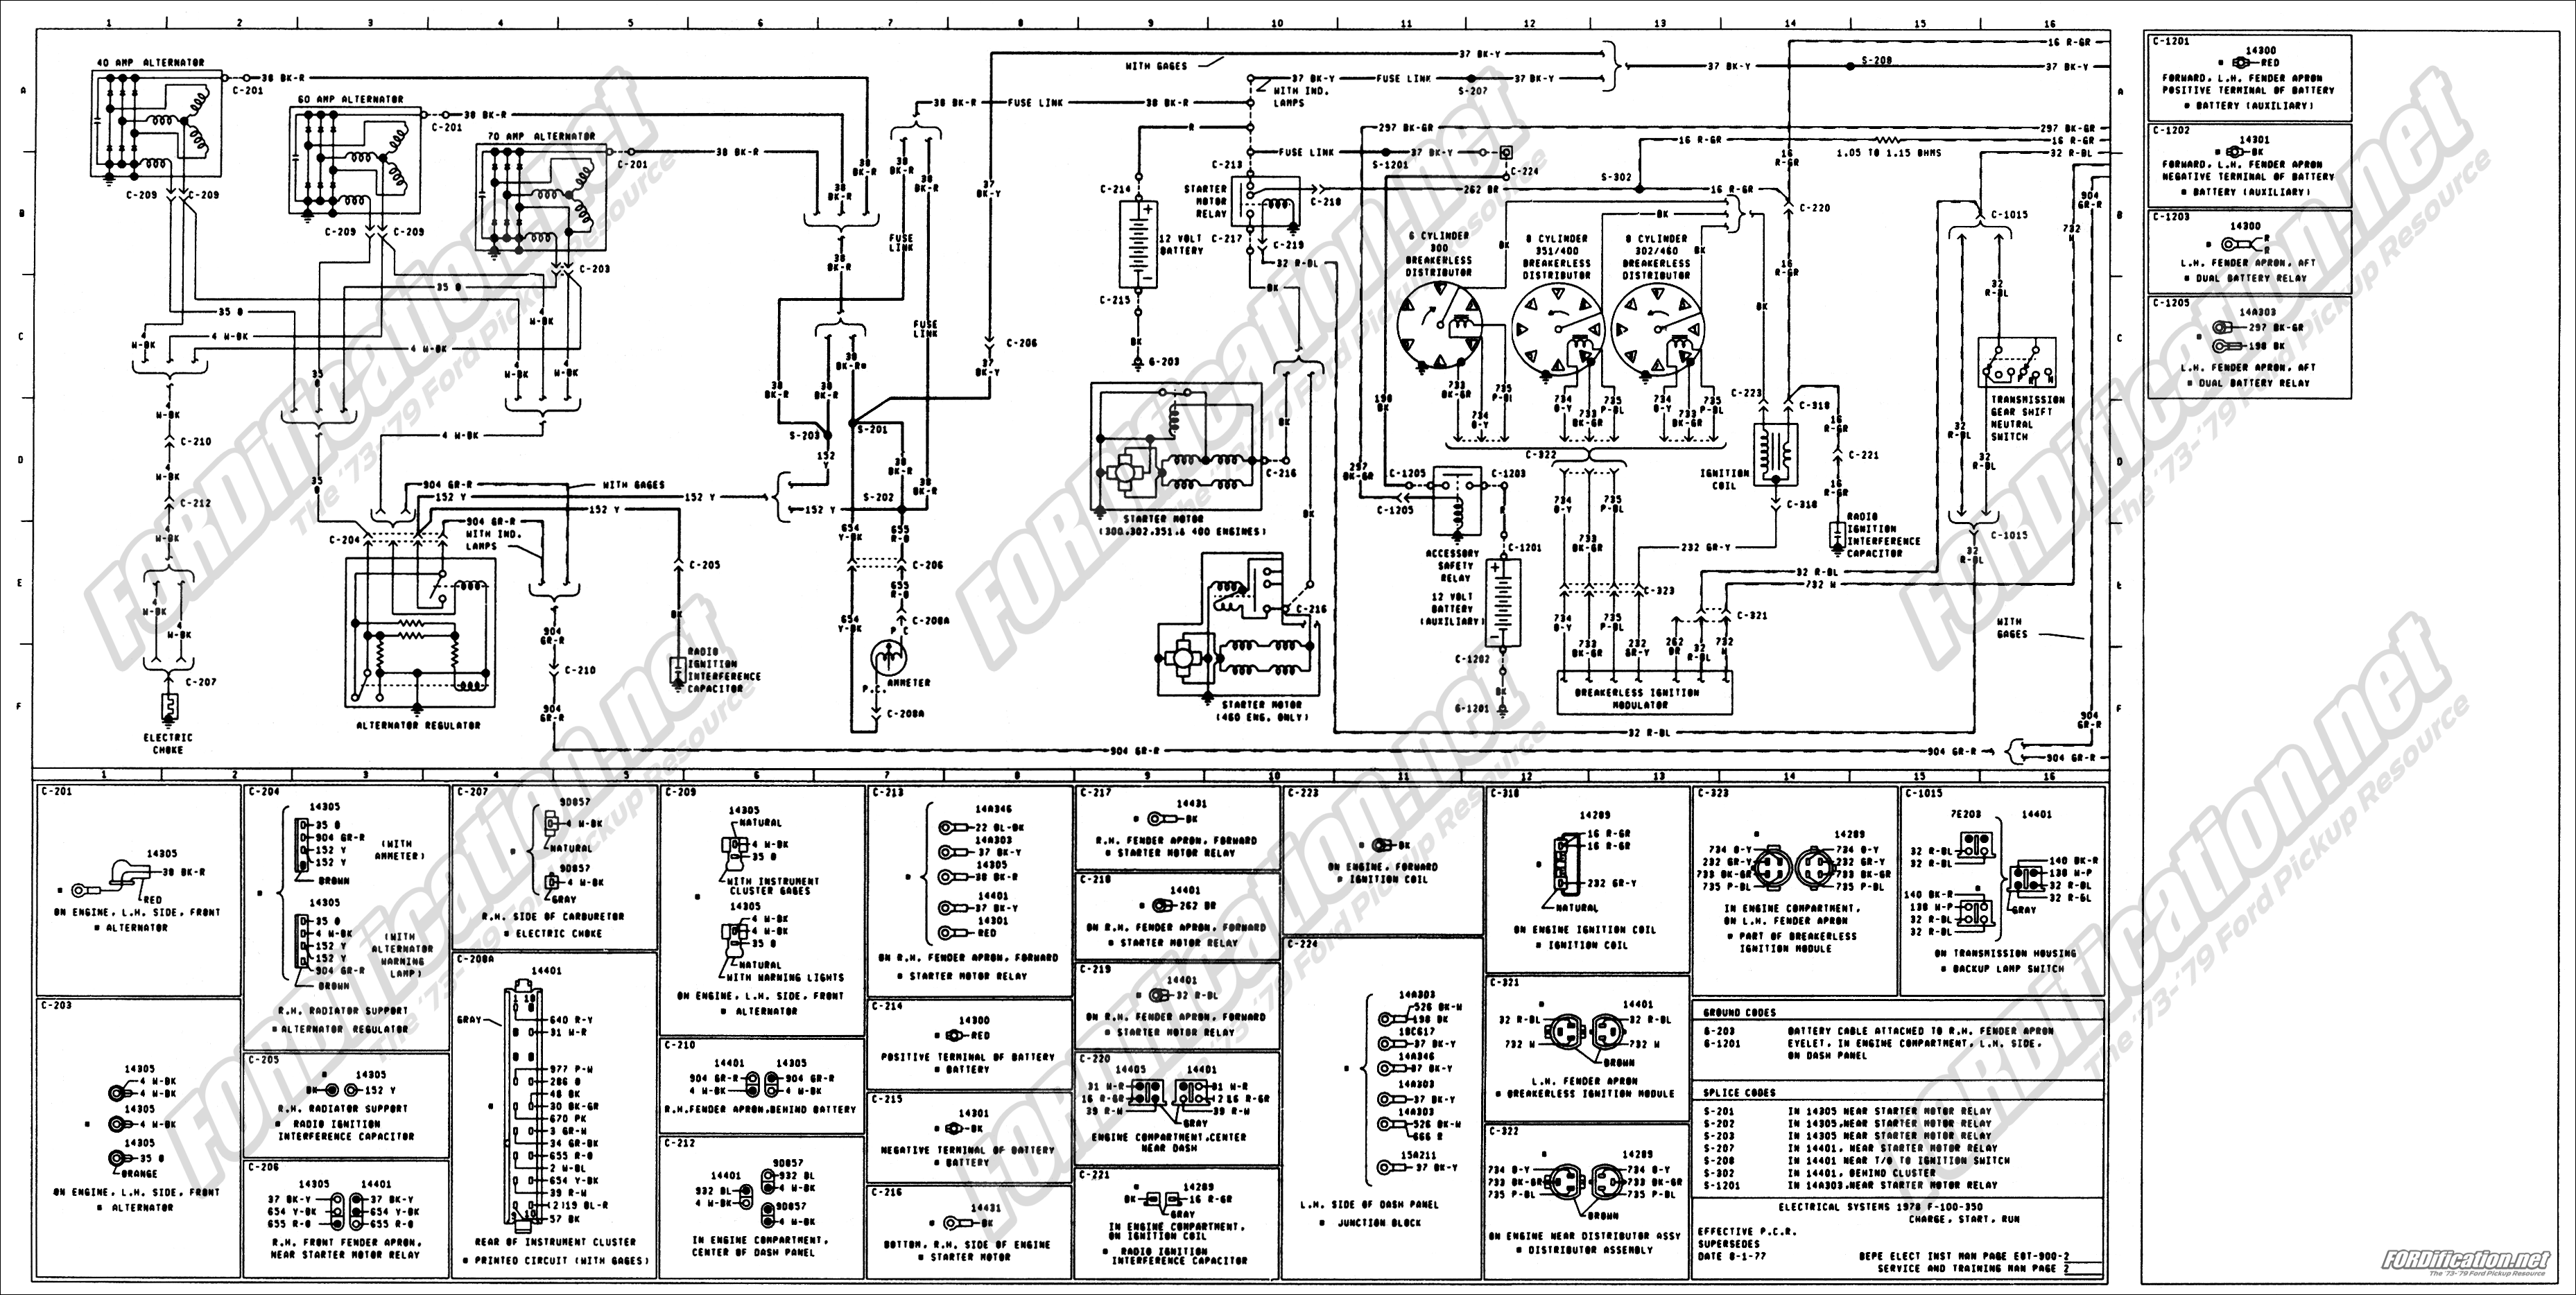 1986 chevrolet pickup wiring diagram images wiring diagram 250 wiring diagram 78 chevy f150